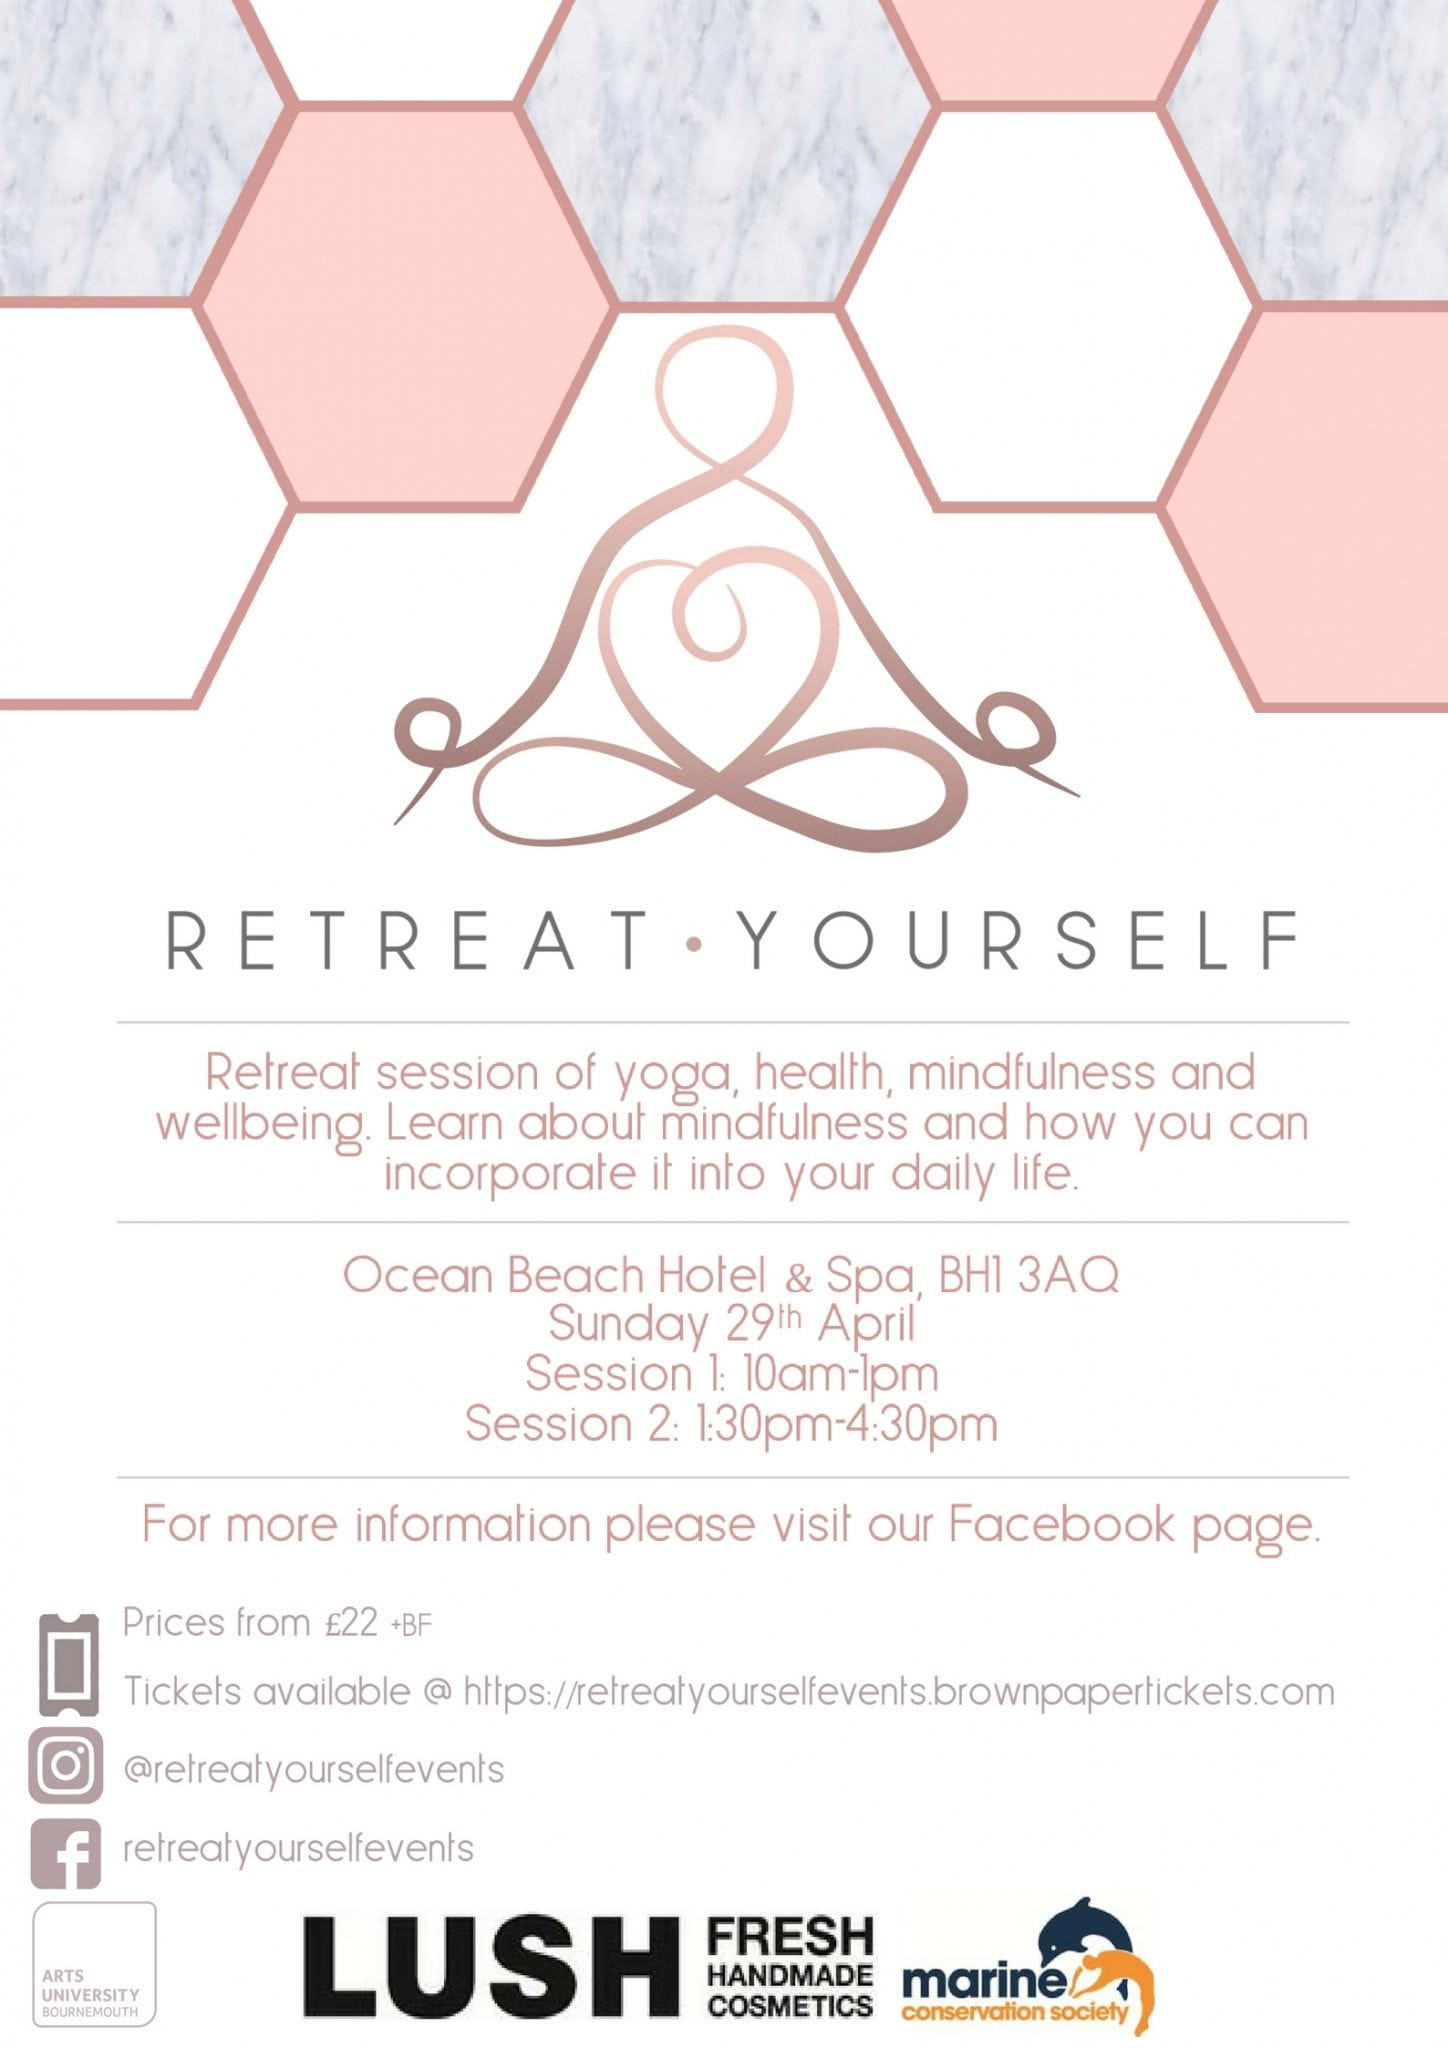 Retreat Yourself: A Creative Events Management Event